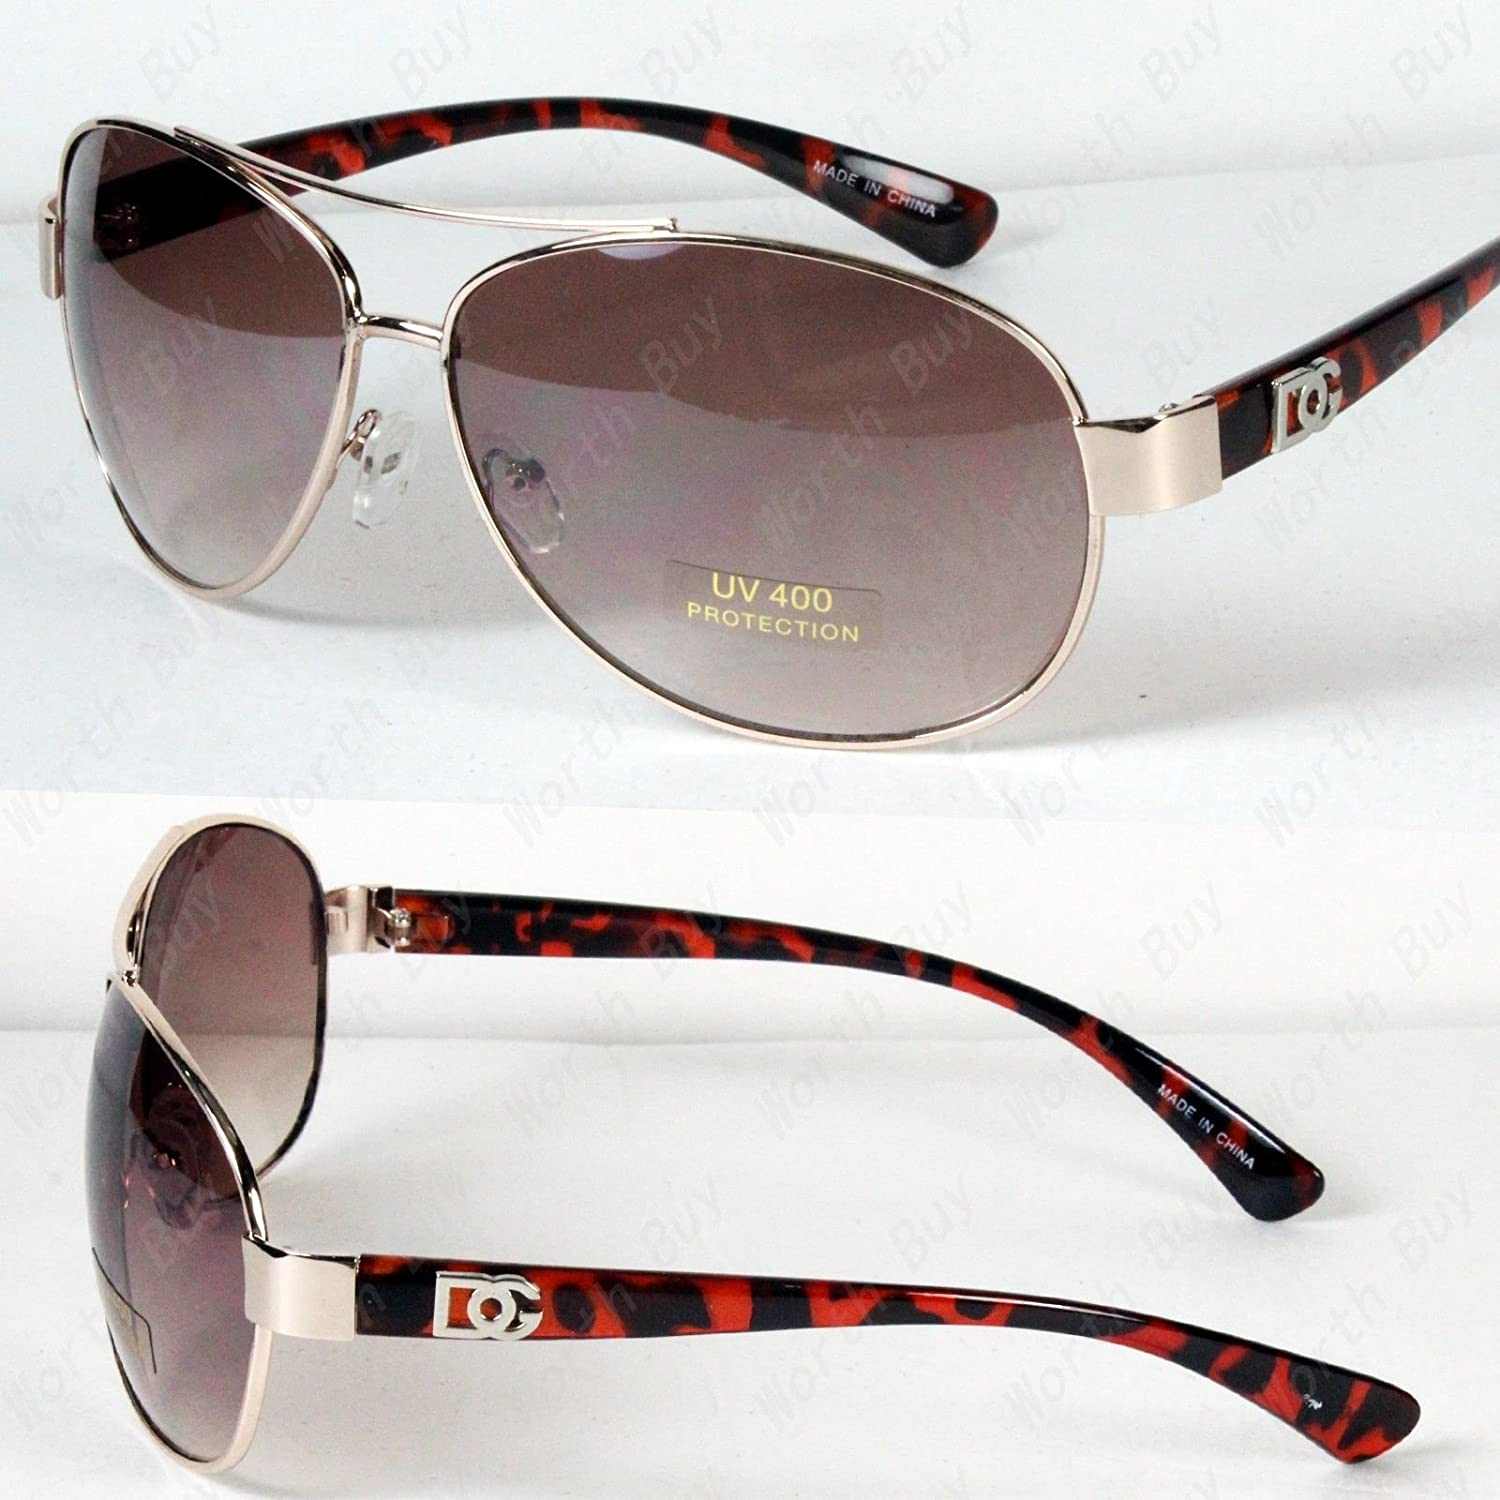 496307e8b659 MPN: Does Not Apply Lens Color: Multi-Color Style: Aviator Frame Material:  Metal & Plastic Brand: DG Eyewear ...